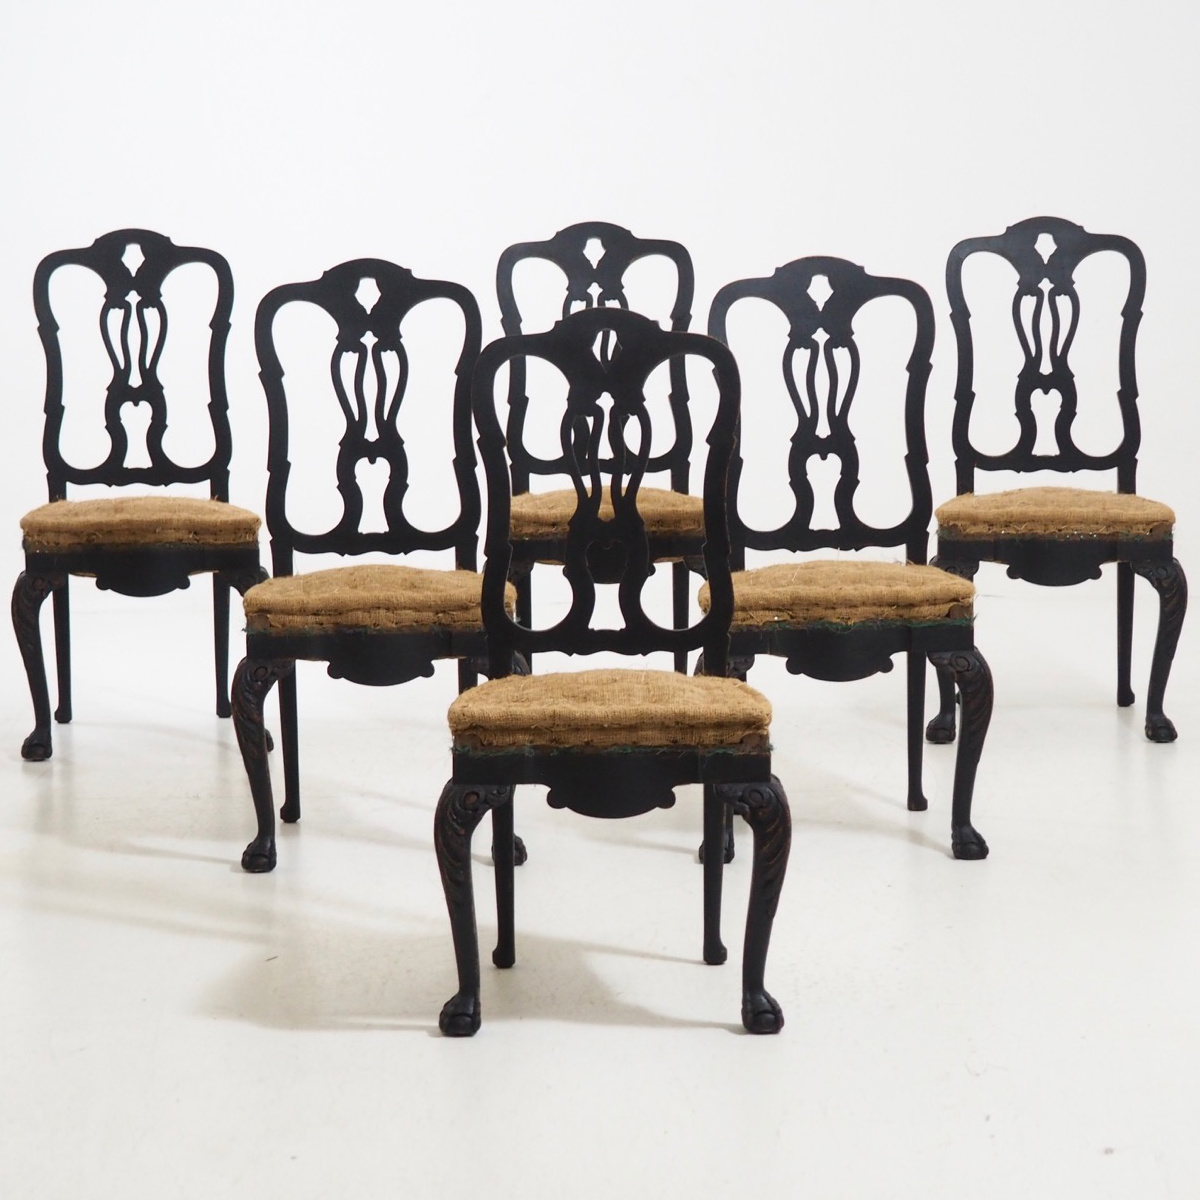 Large Swedish chairs, 19th C. - € 1.800